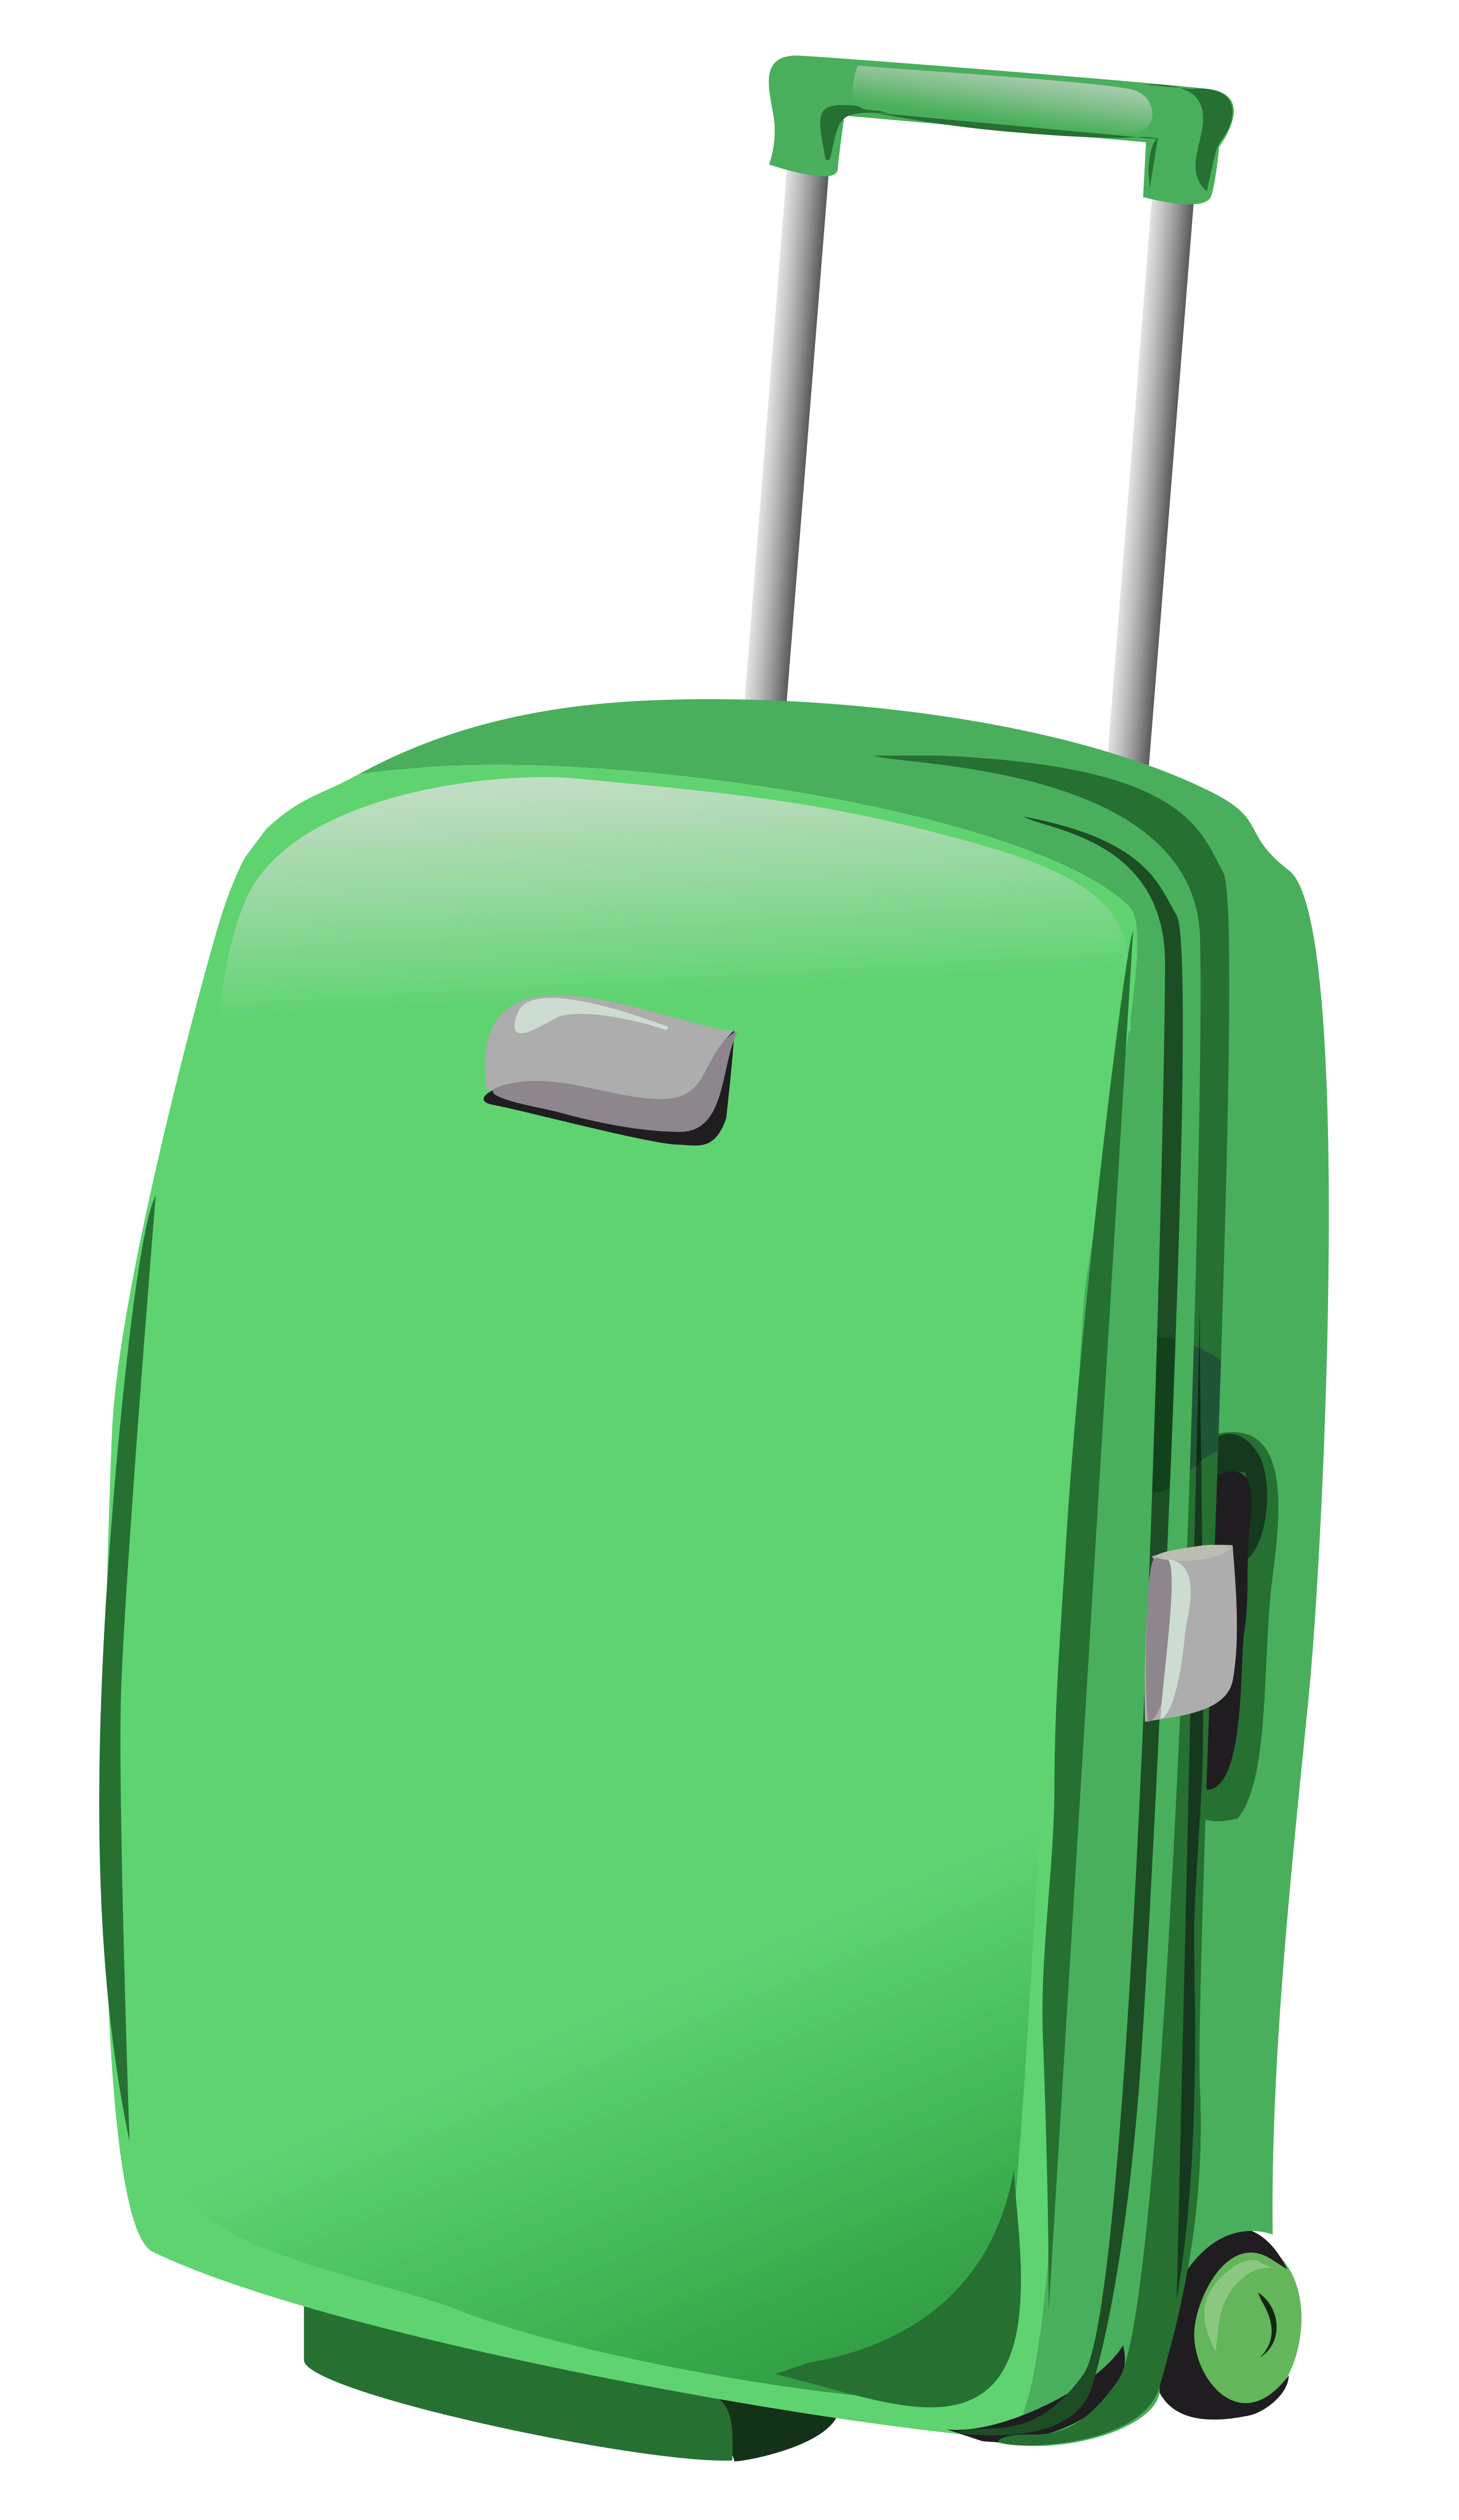 Luggage clipart green suitcase.  collection of transparent